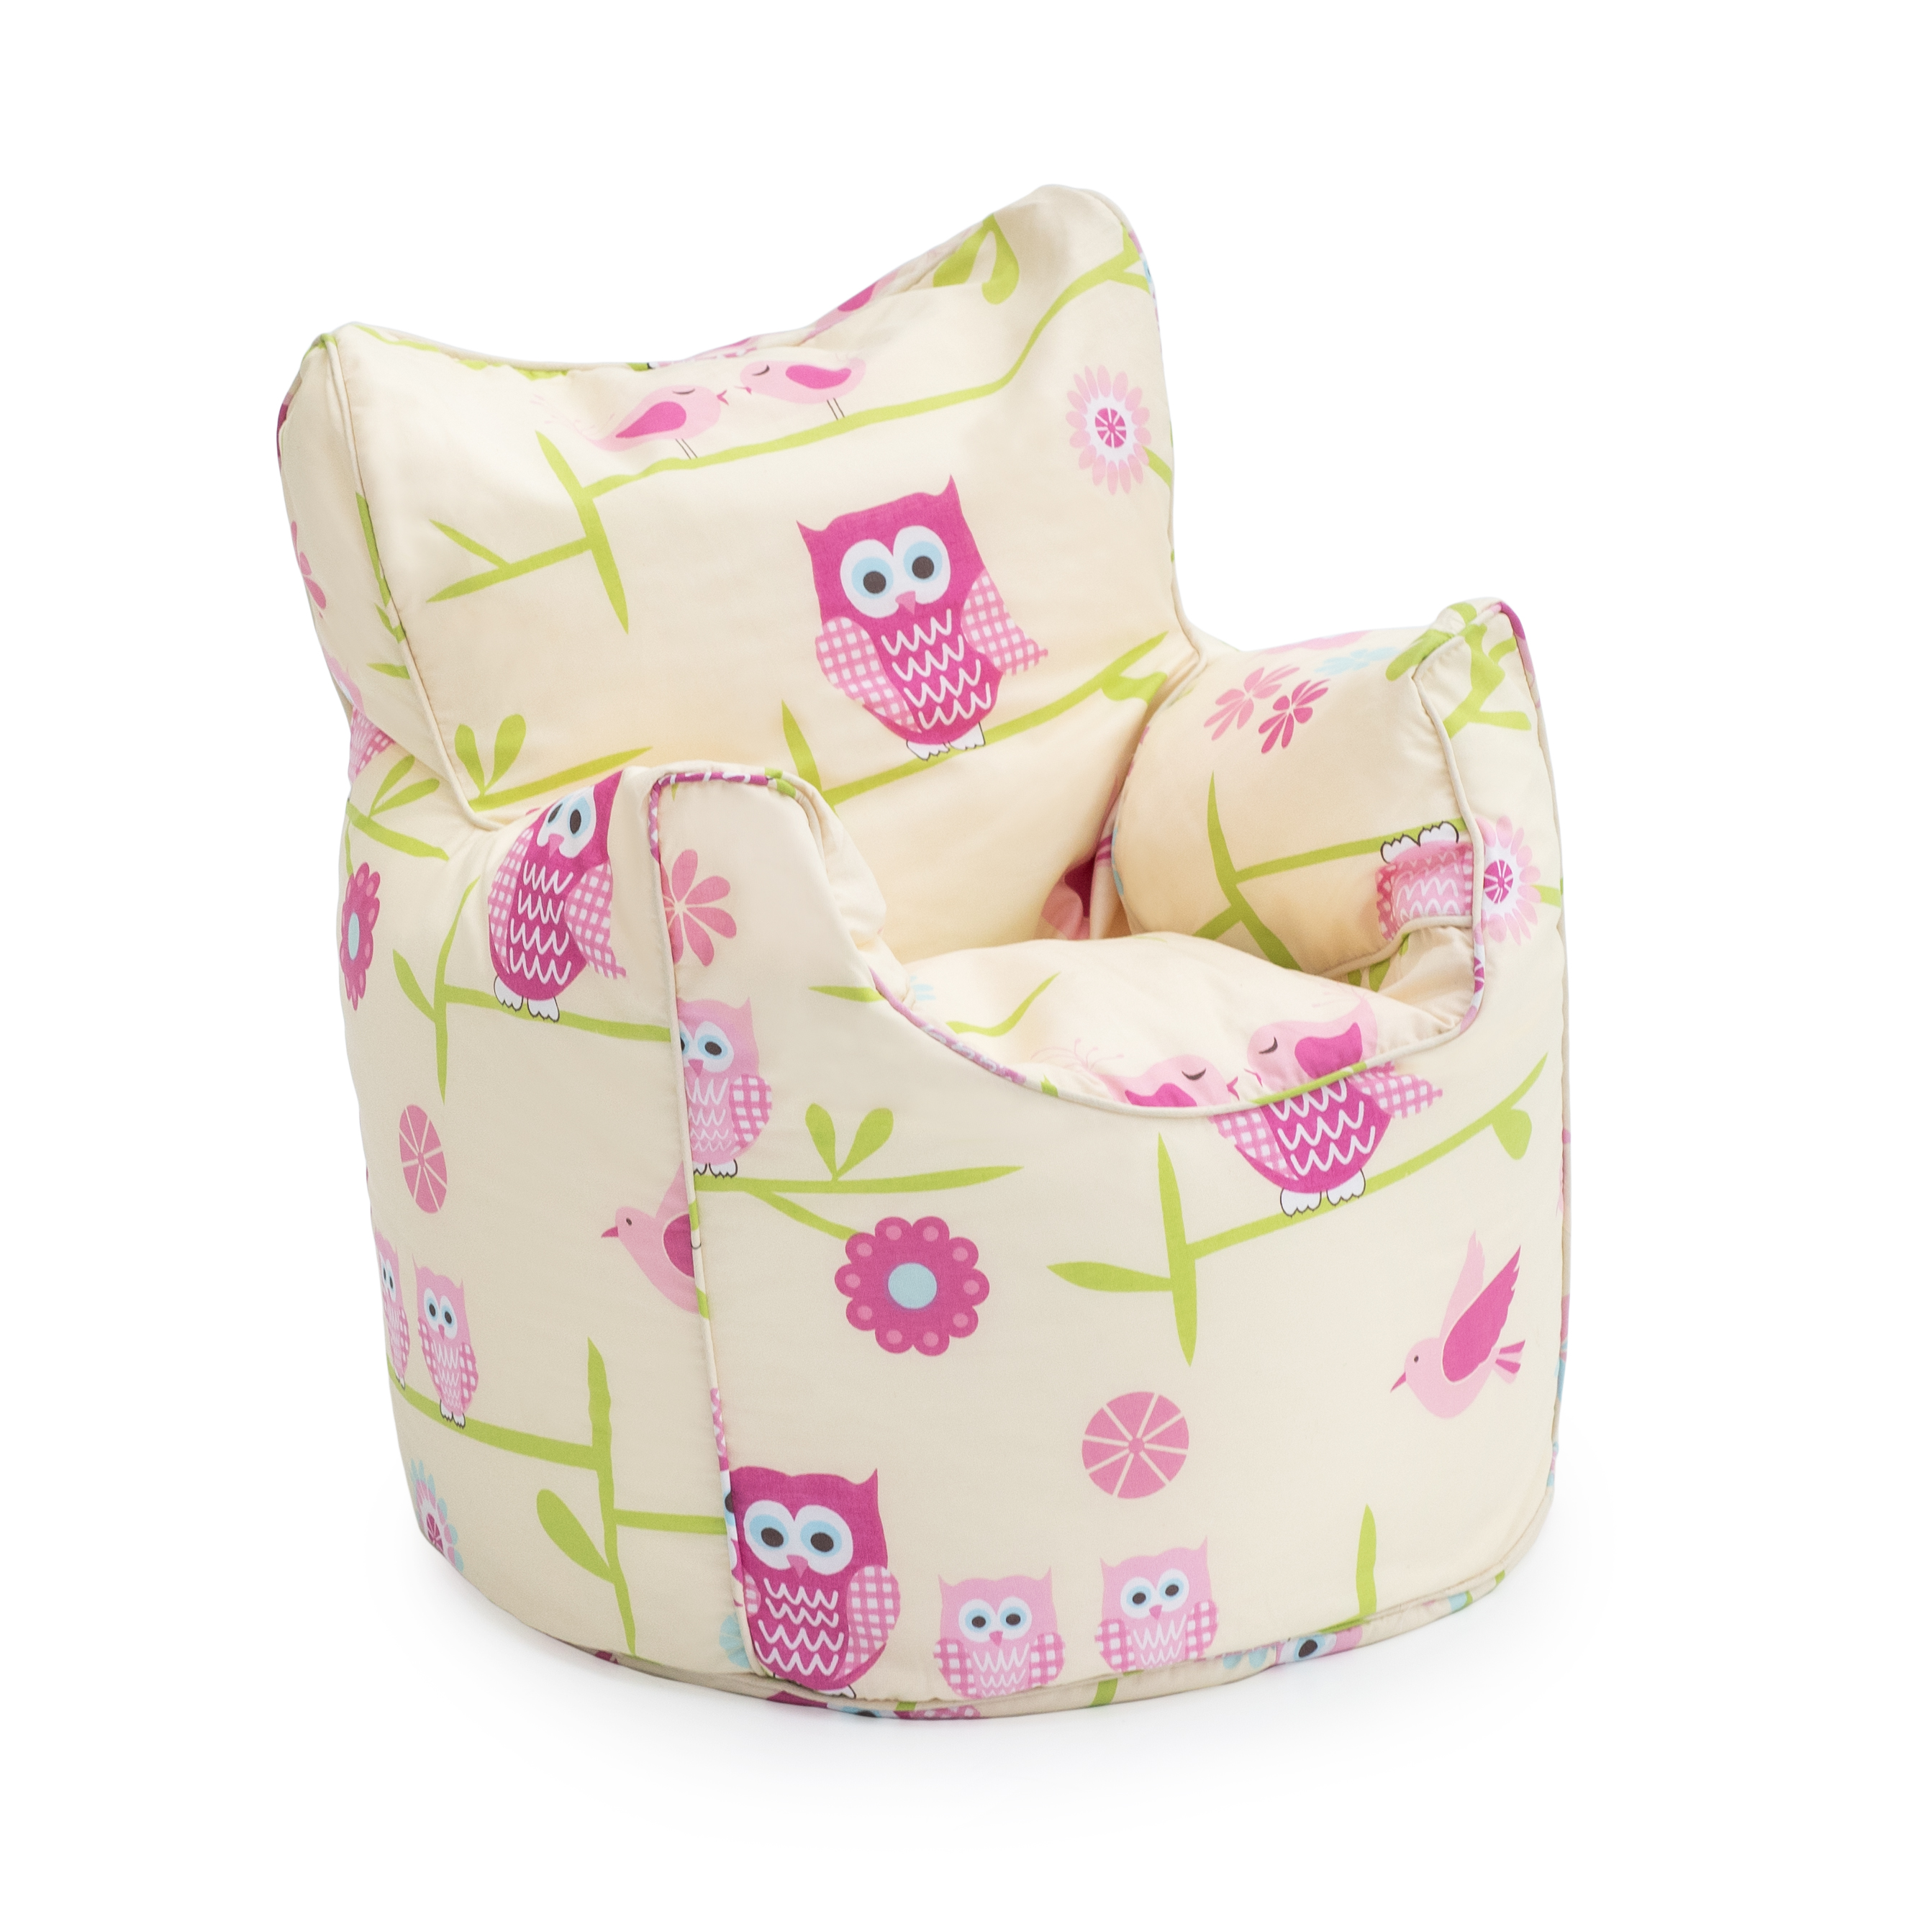 Character Bean Bag Chairs Childrens Filled Beanbag Kids Chair